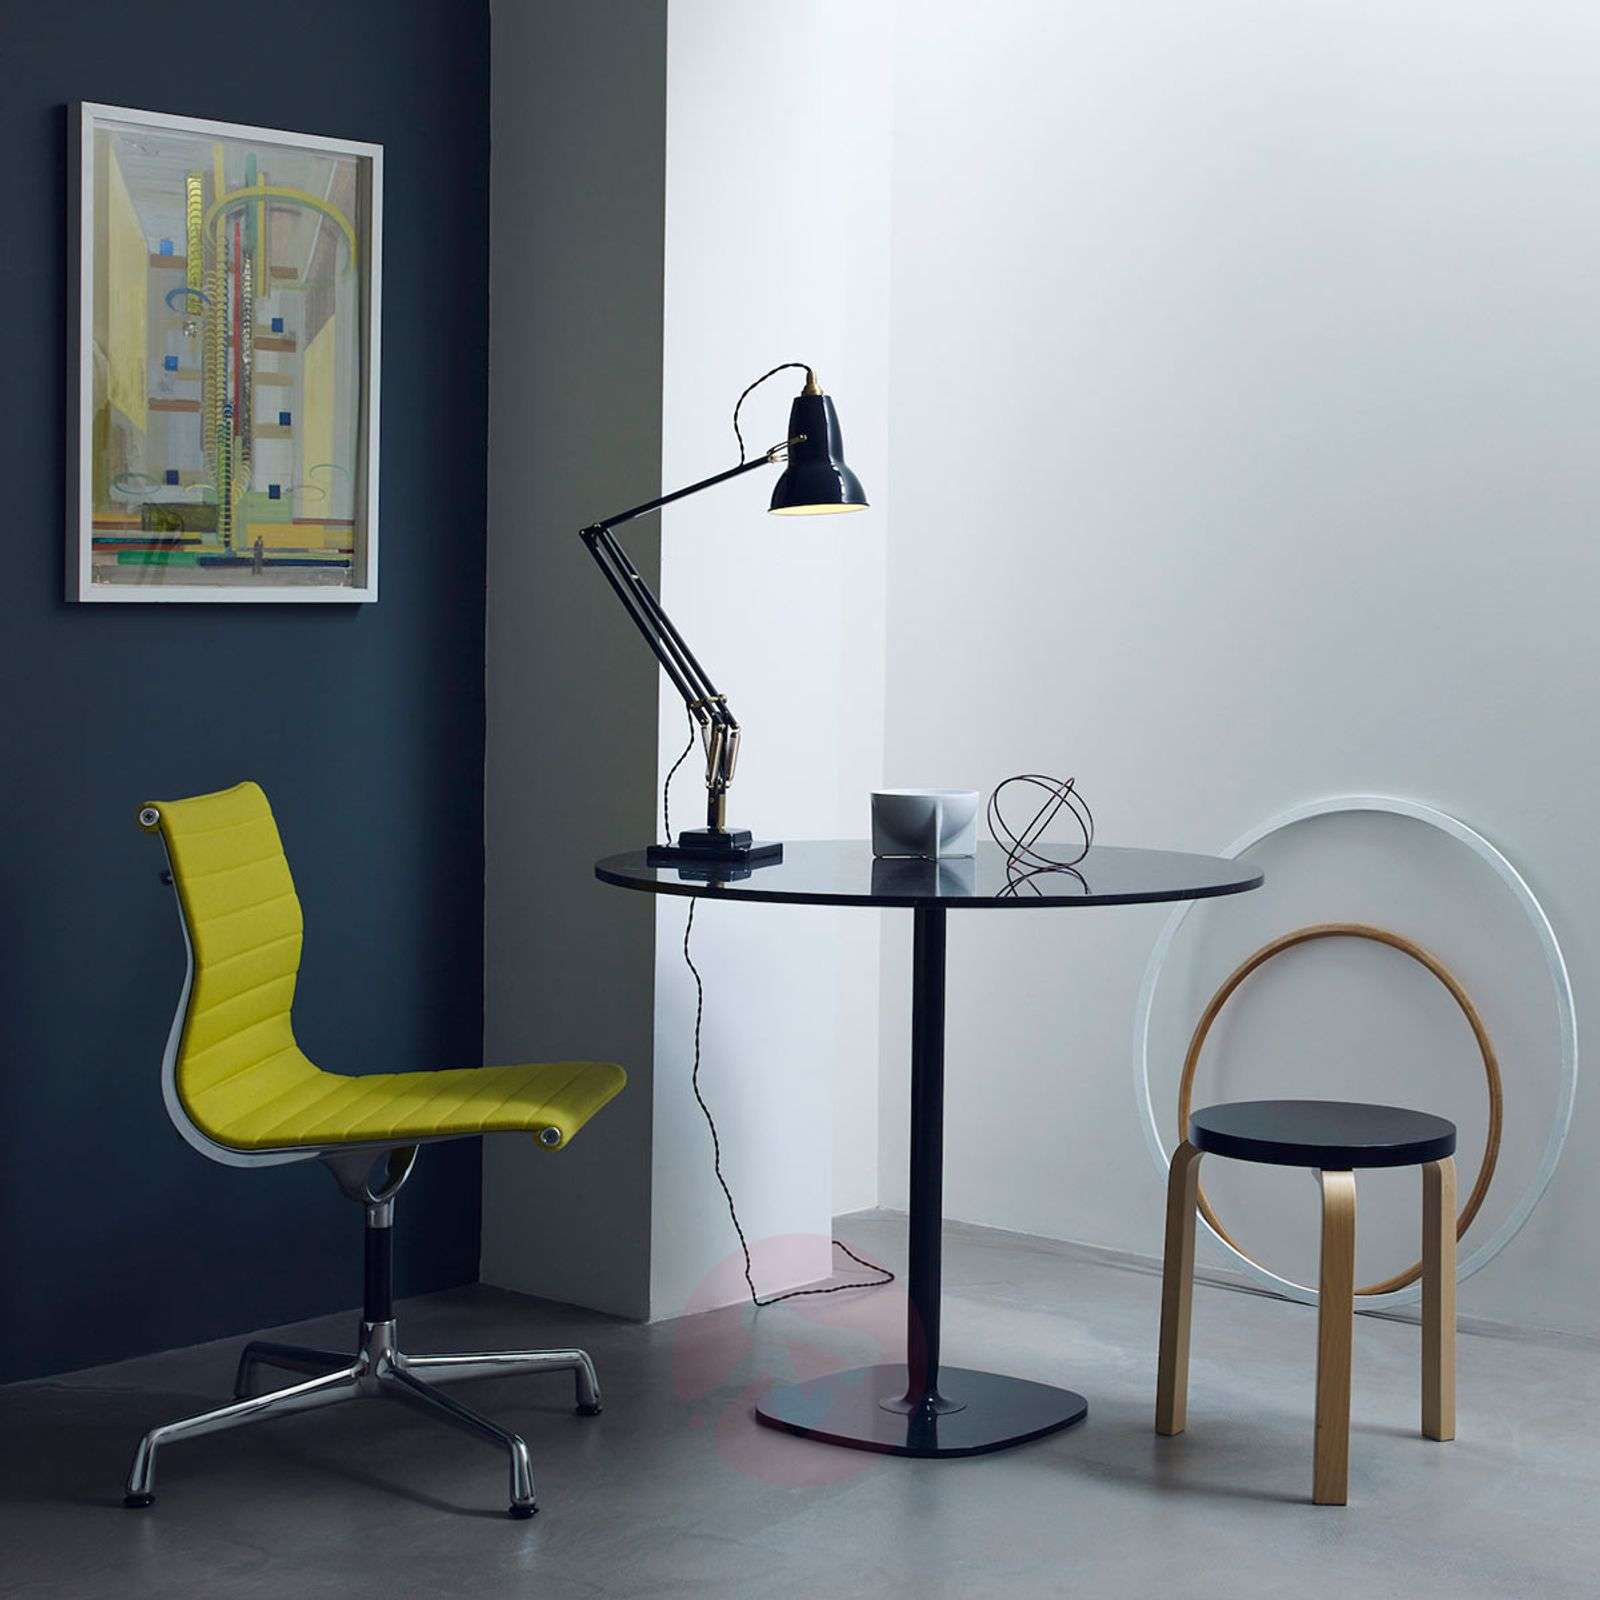 Anglepoise Original 1227 brass table lamp-1073008X-01